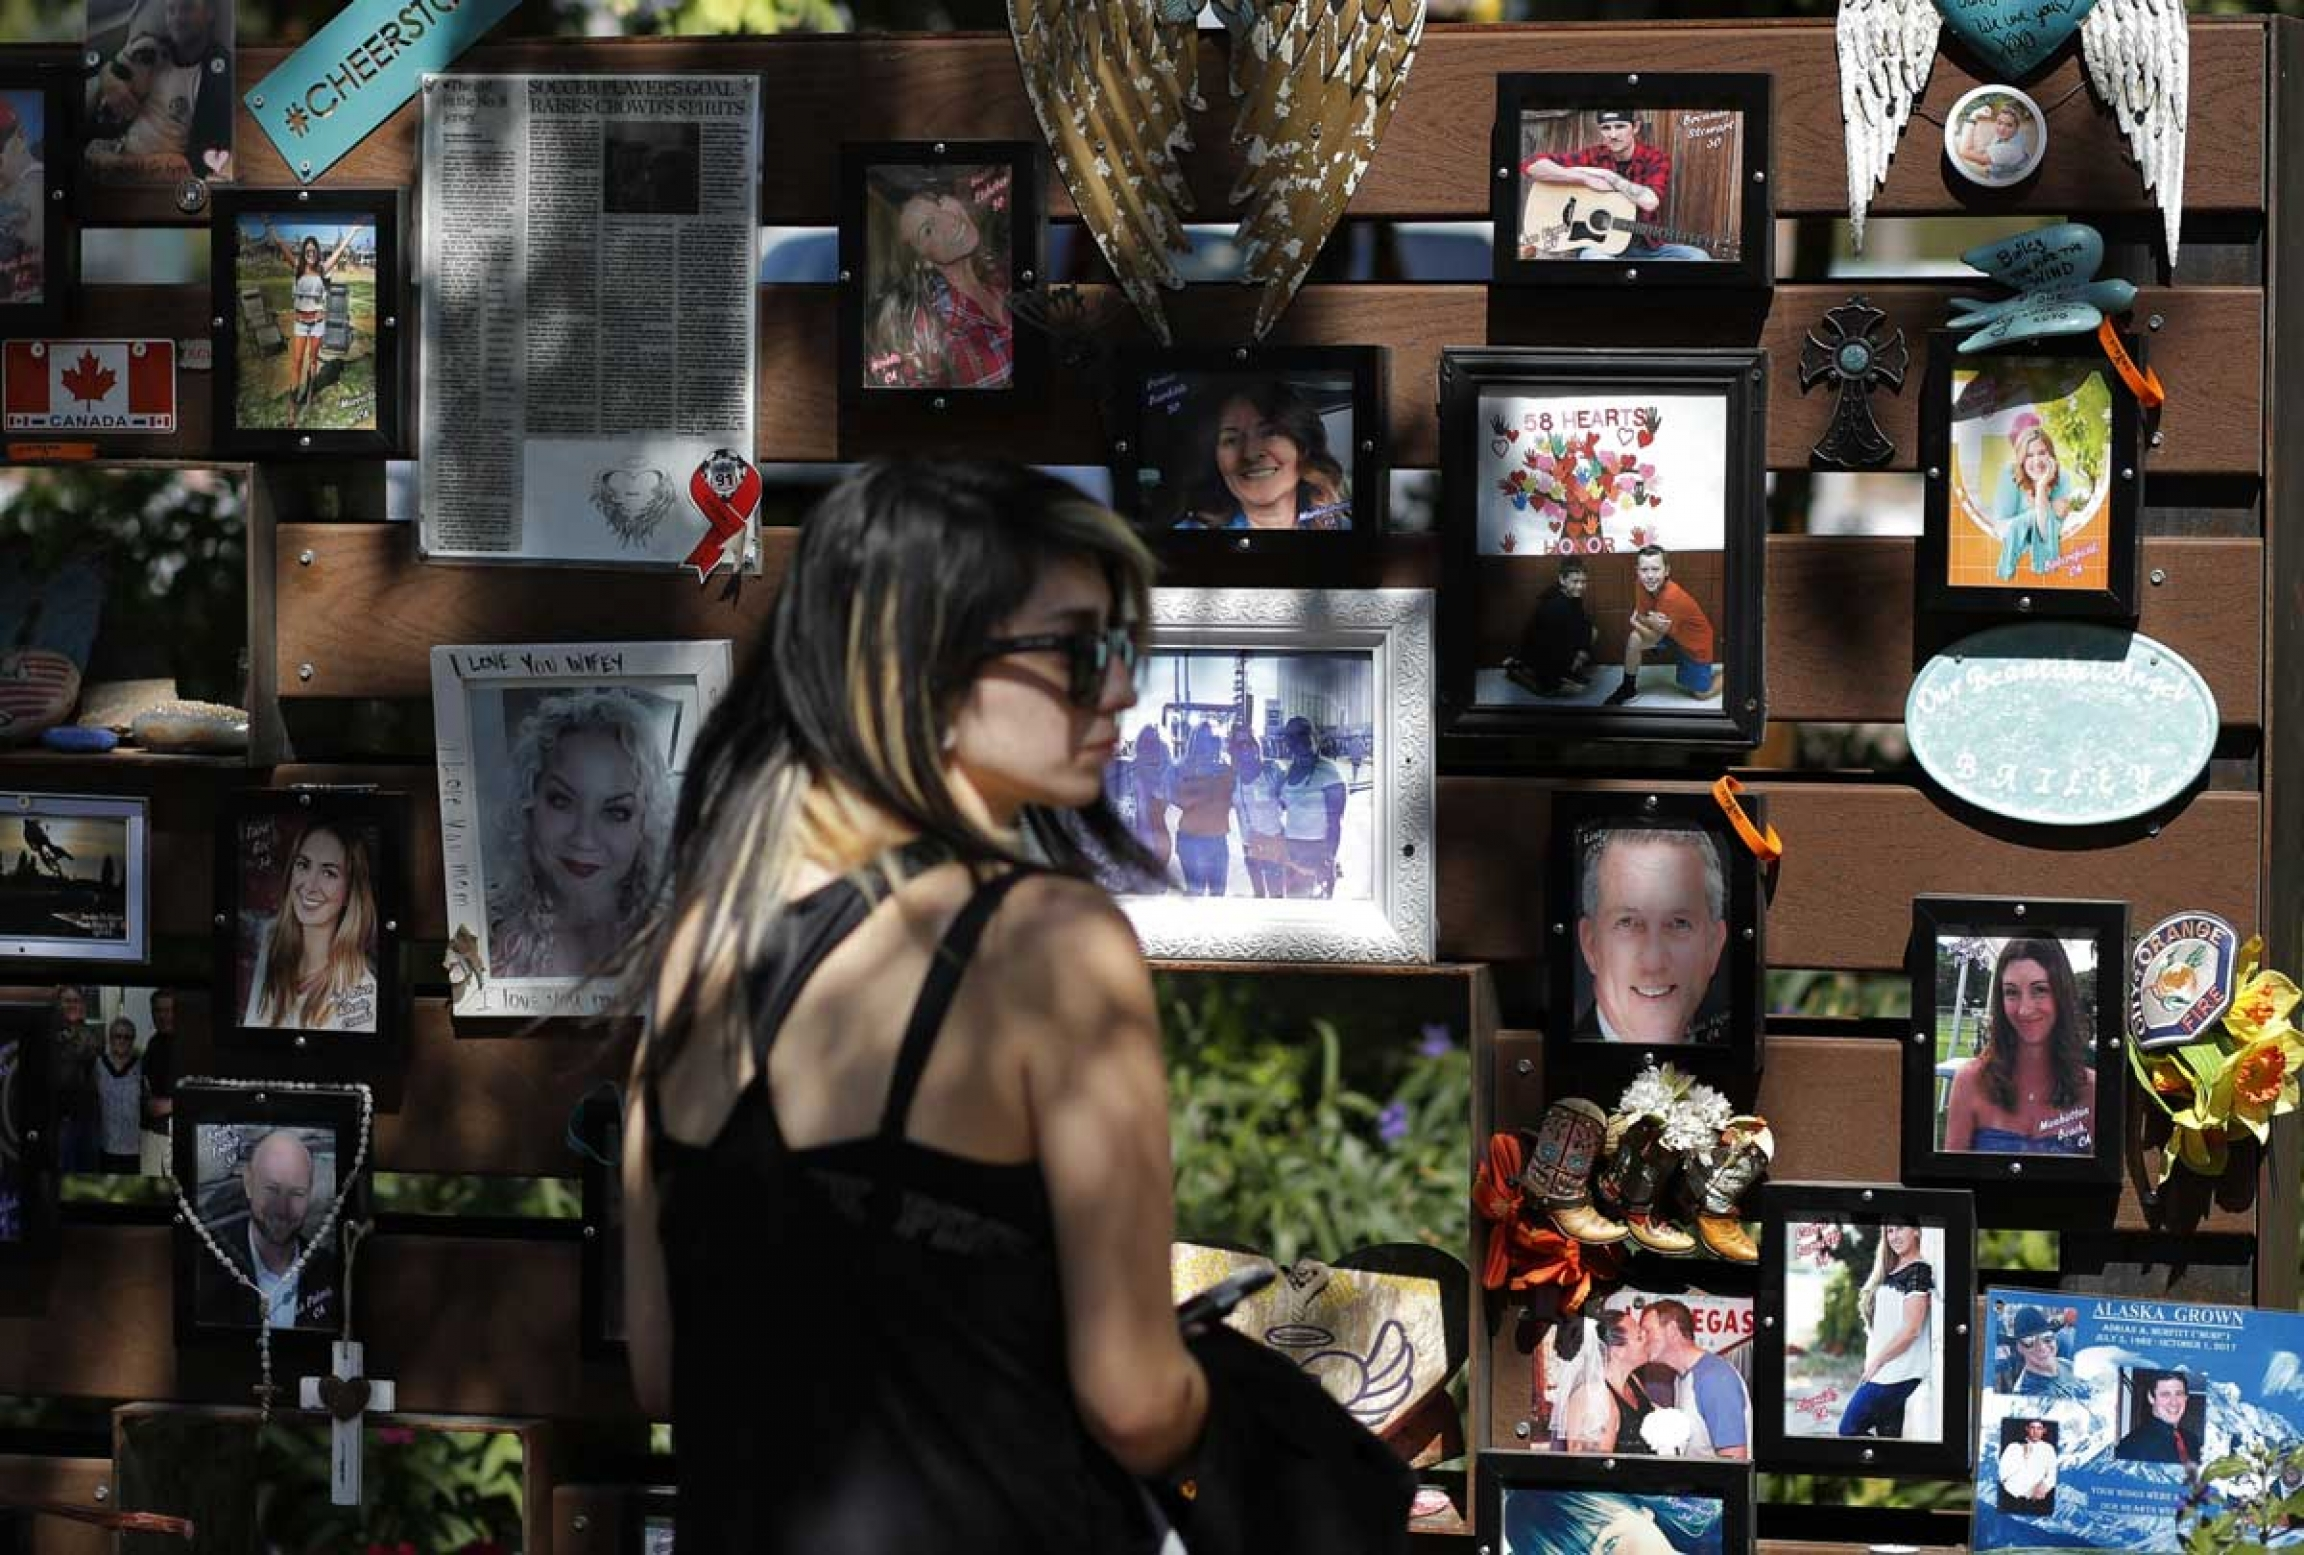 A memorial garden honors victims of the 2017 mass shooting at a Las Vegas country music festival.